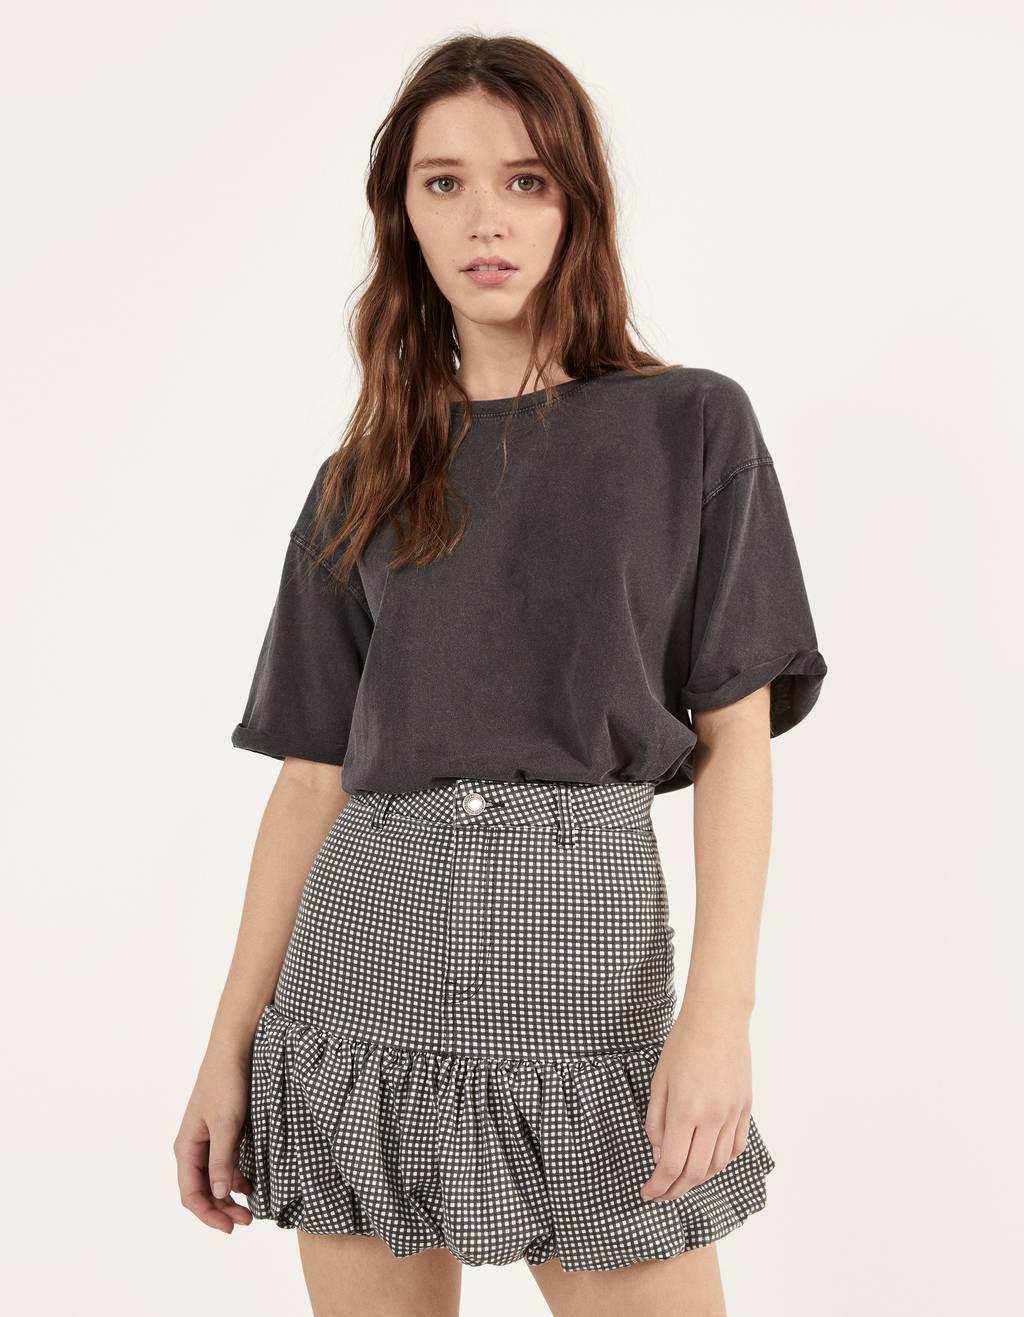 Bubble hem skirt with belt